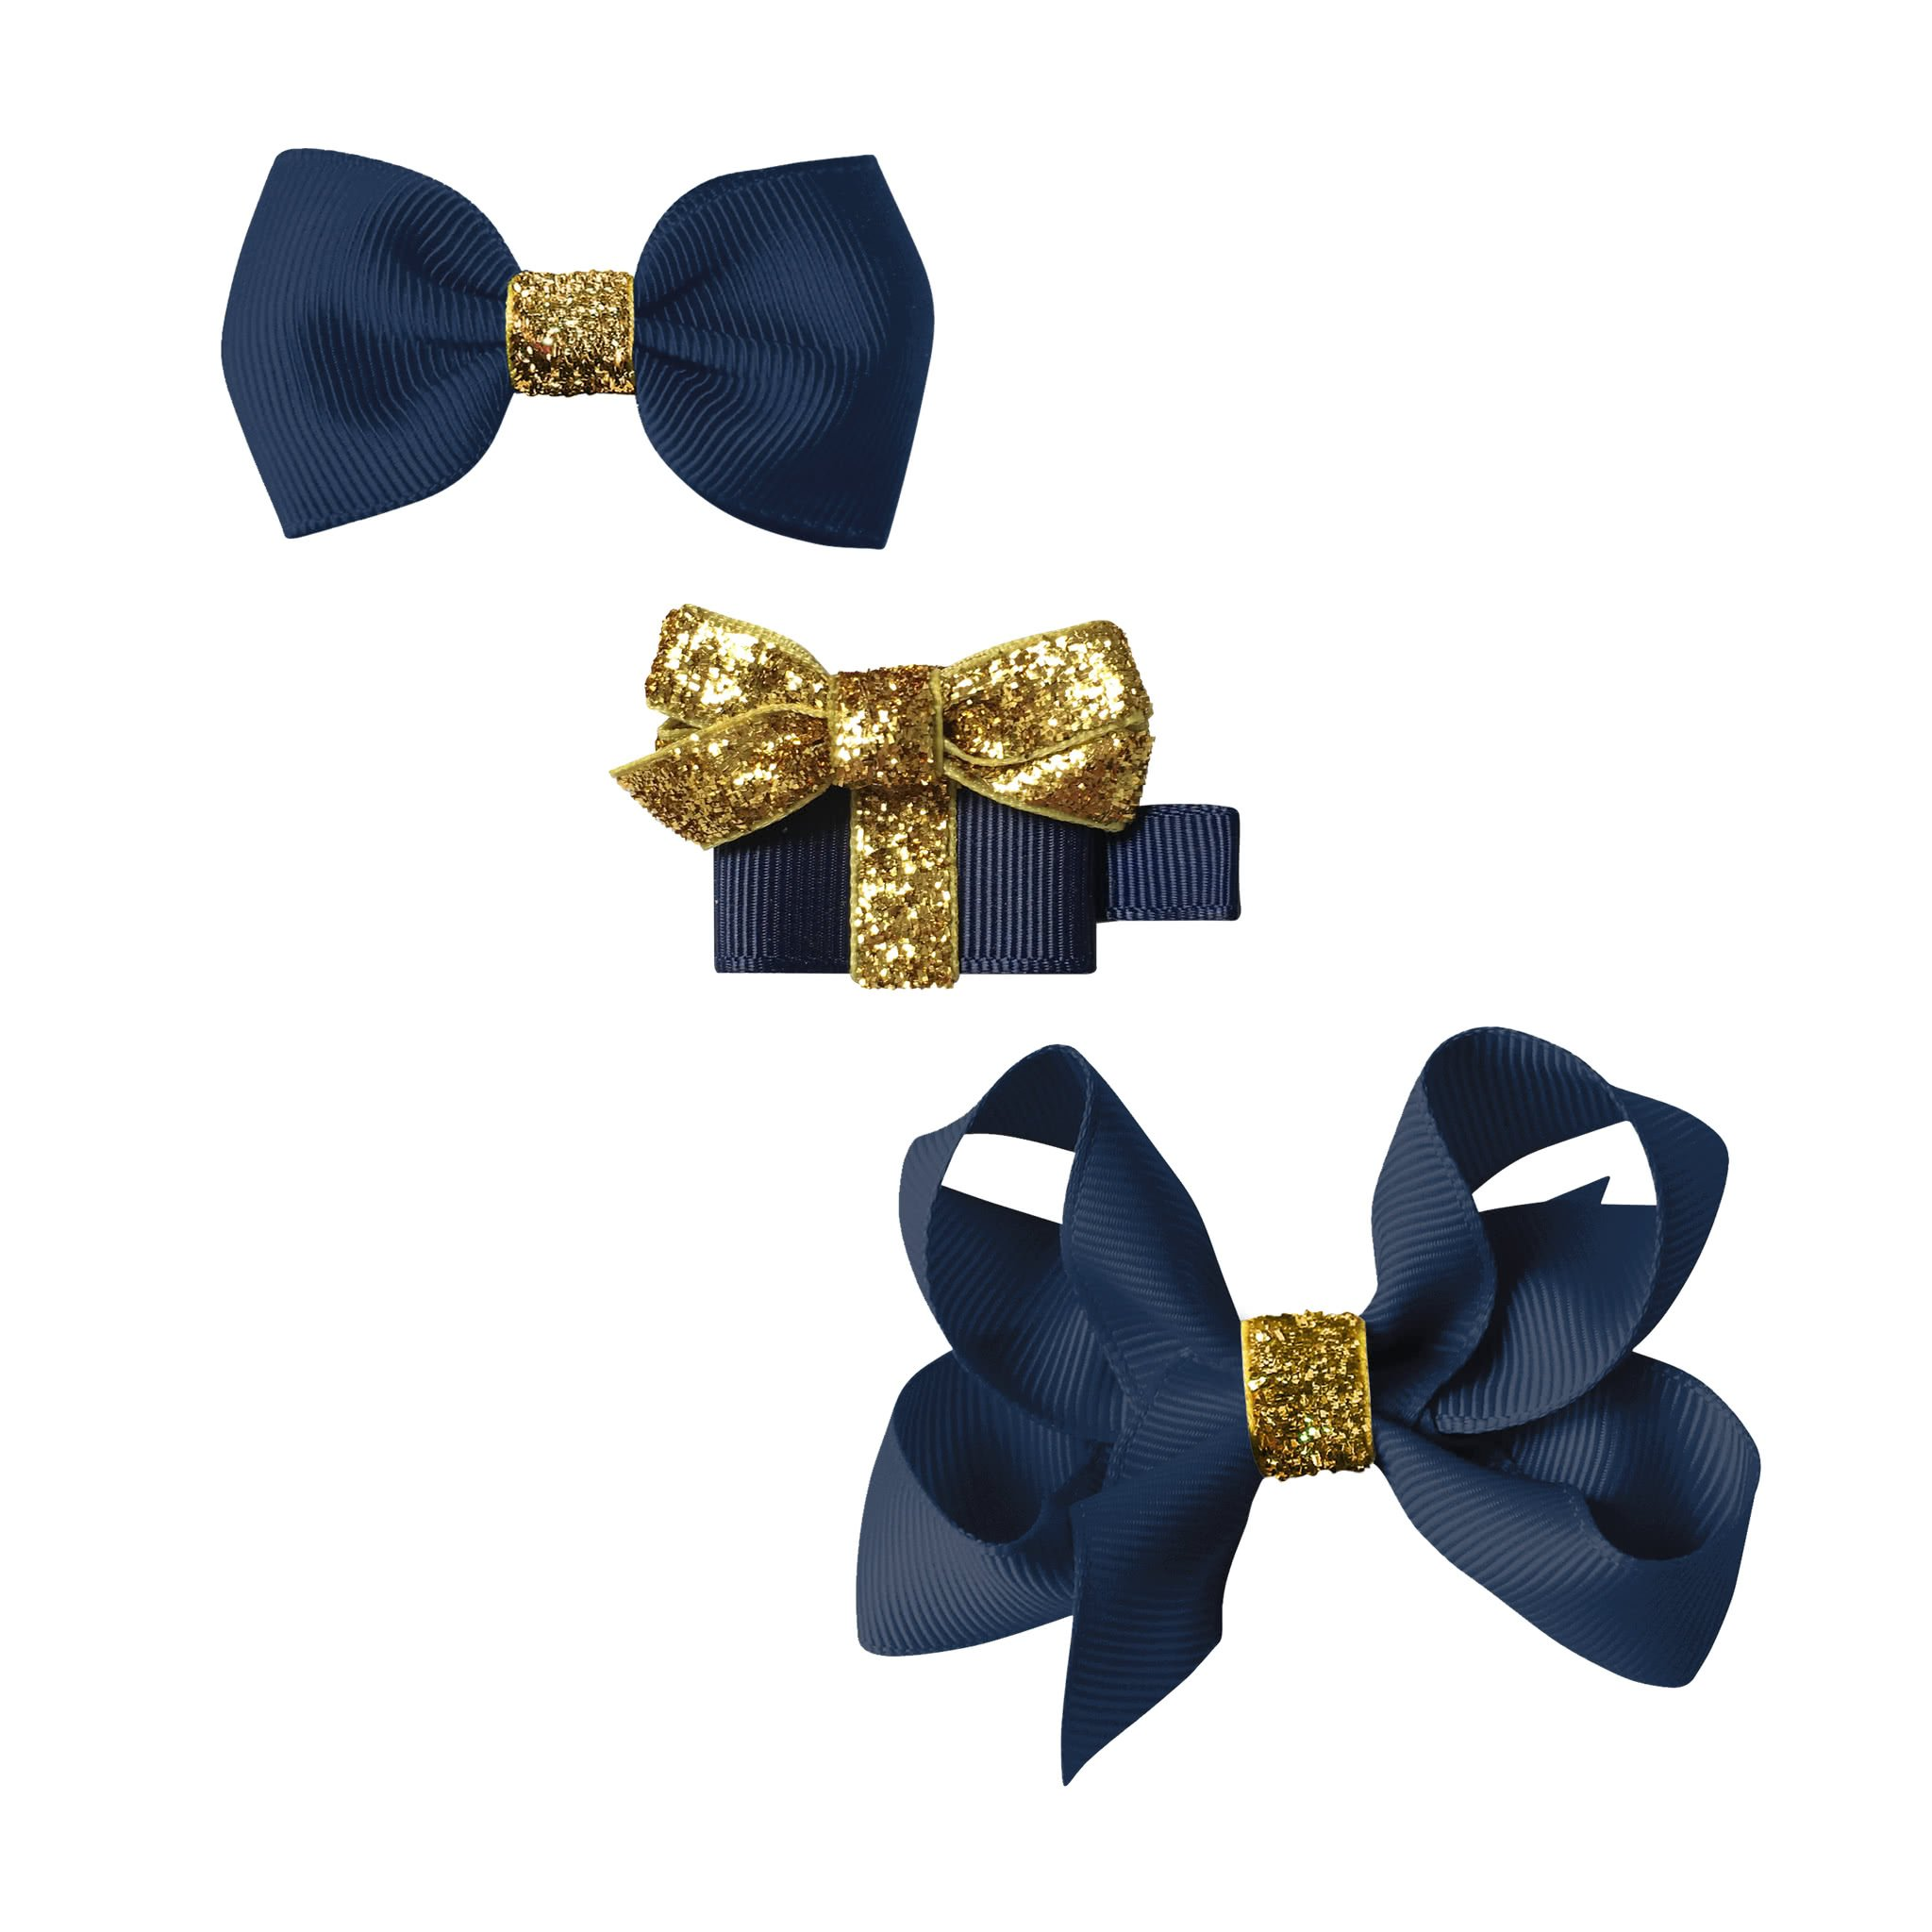 Image of Milledeux® Classic Christmas gift set - a Gift and 2 bows - navy / gold